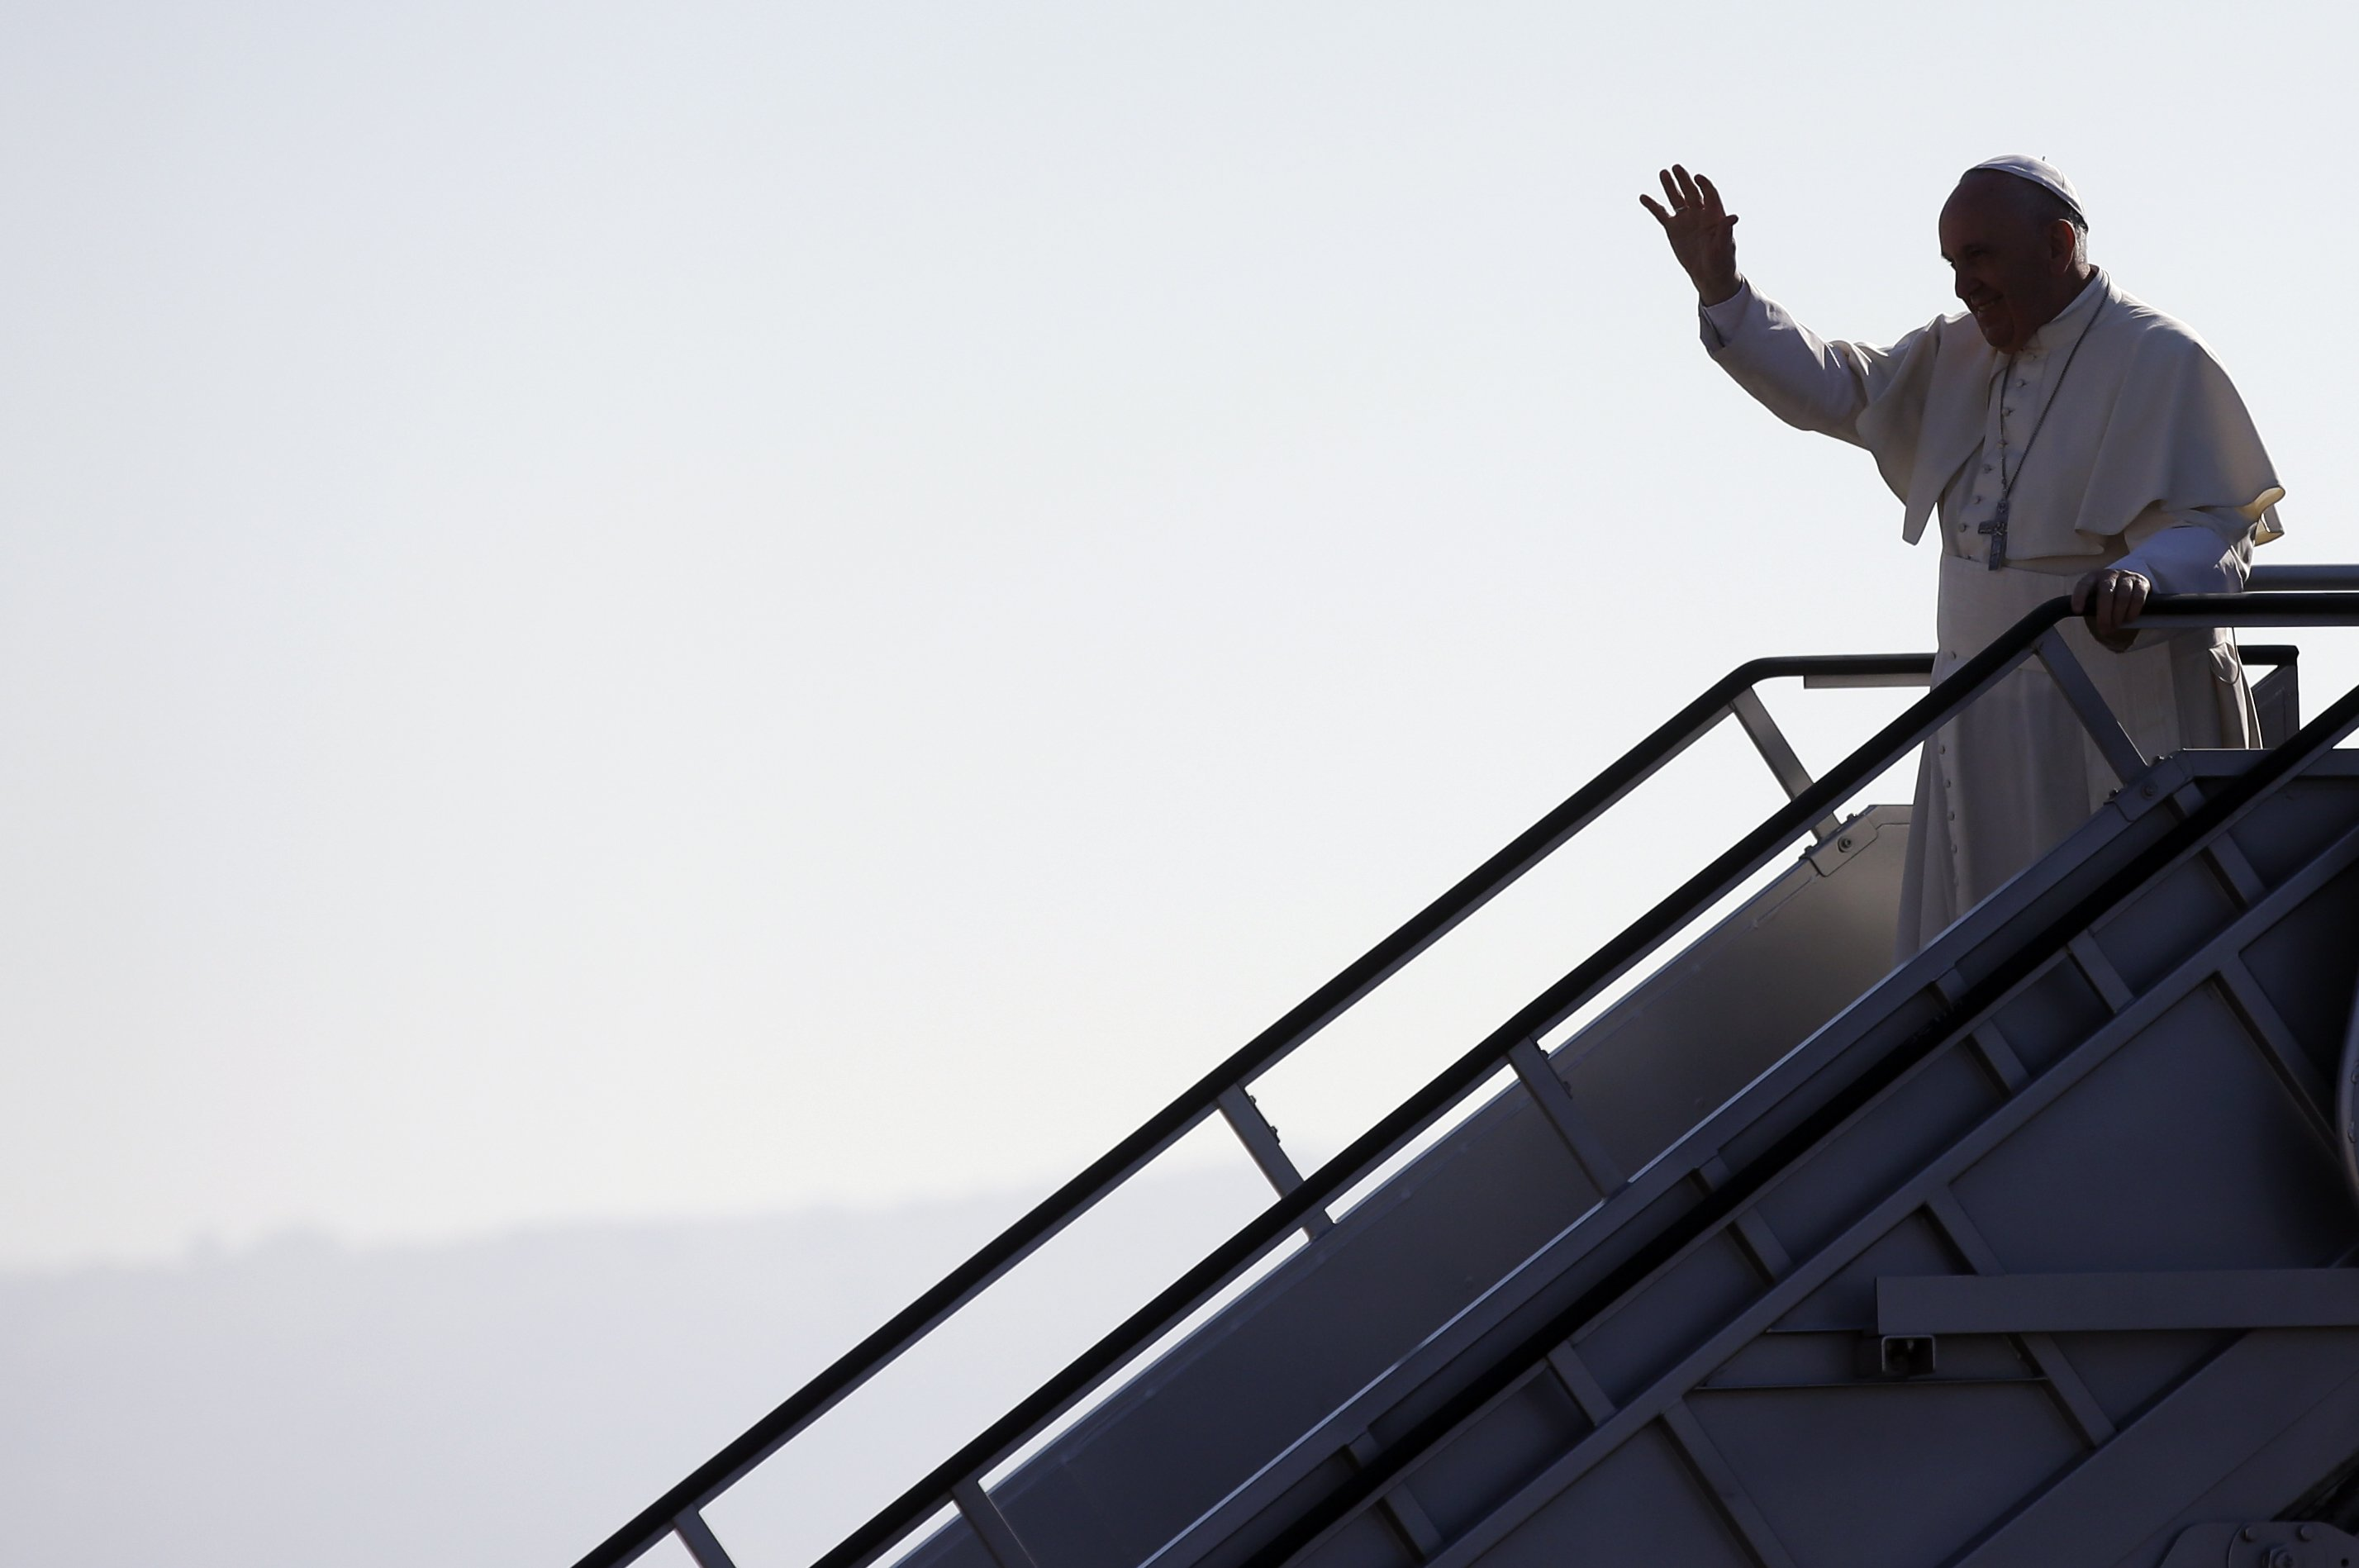 Pope Francis waves upon his arrival at the airport in Tuxtla Gutierrez, Mexico, on Feb. 15, 2016.